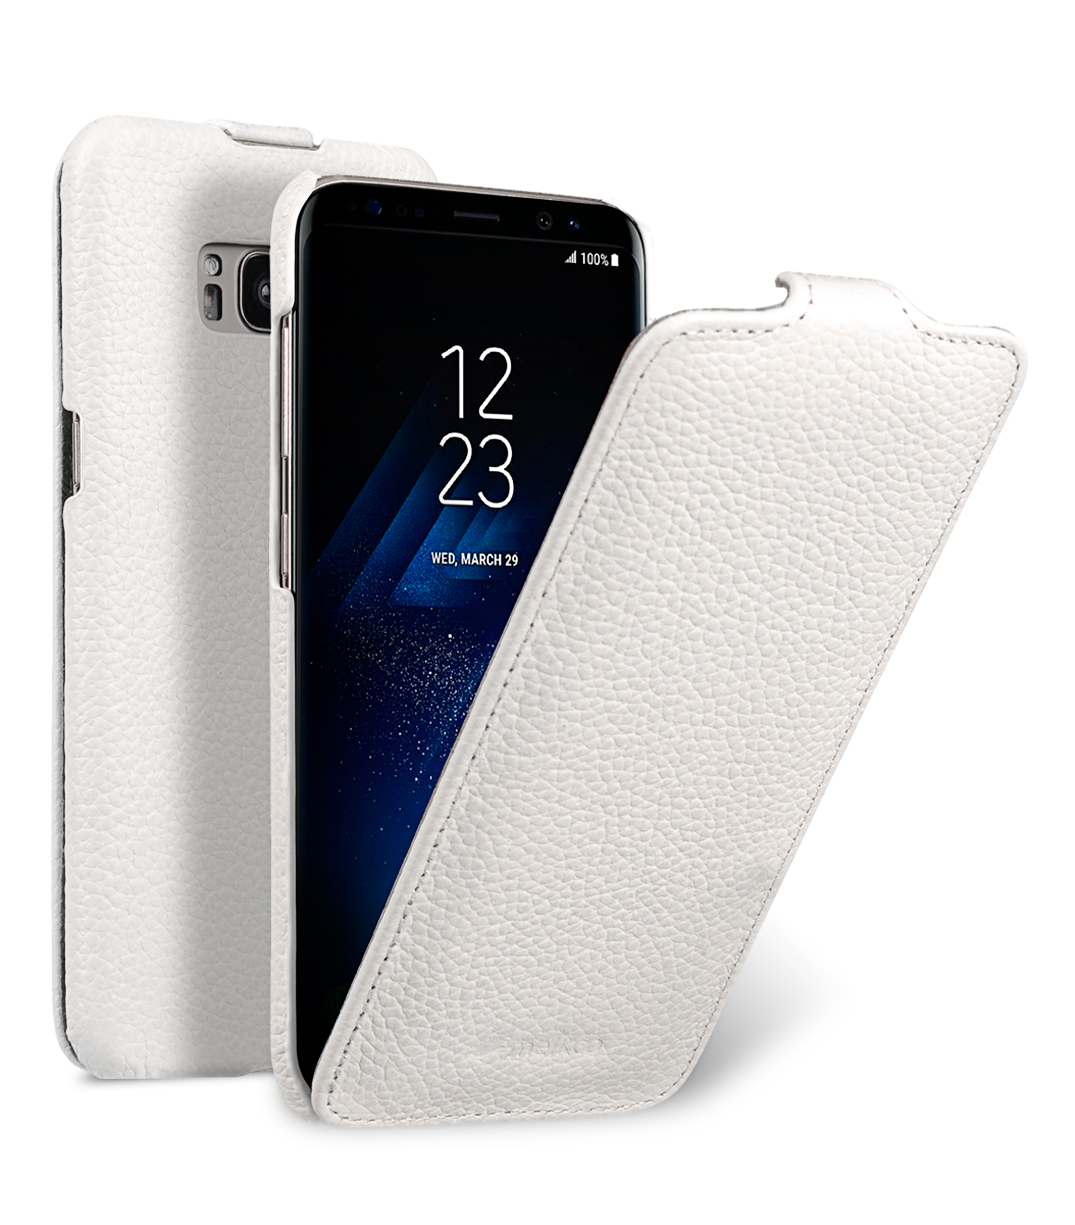 Melkco Premium Leather Case for Samsung Galaxy S8 Plus - Jacka Type ( White LC )